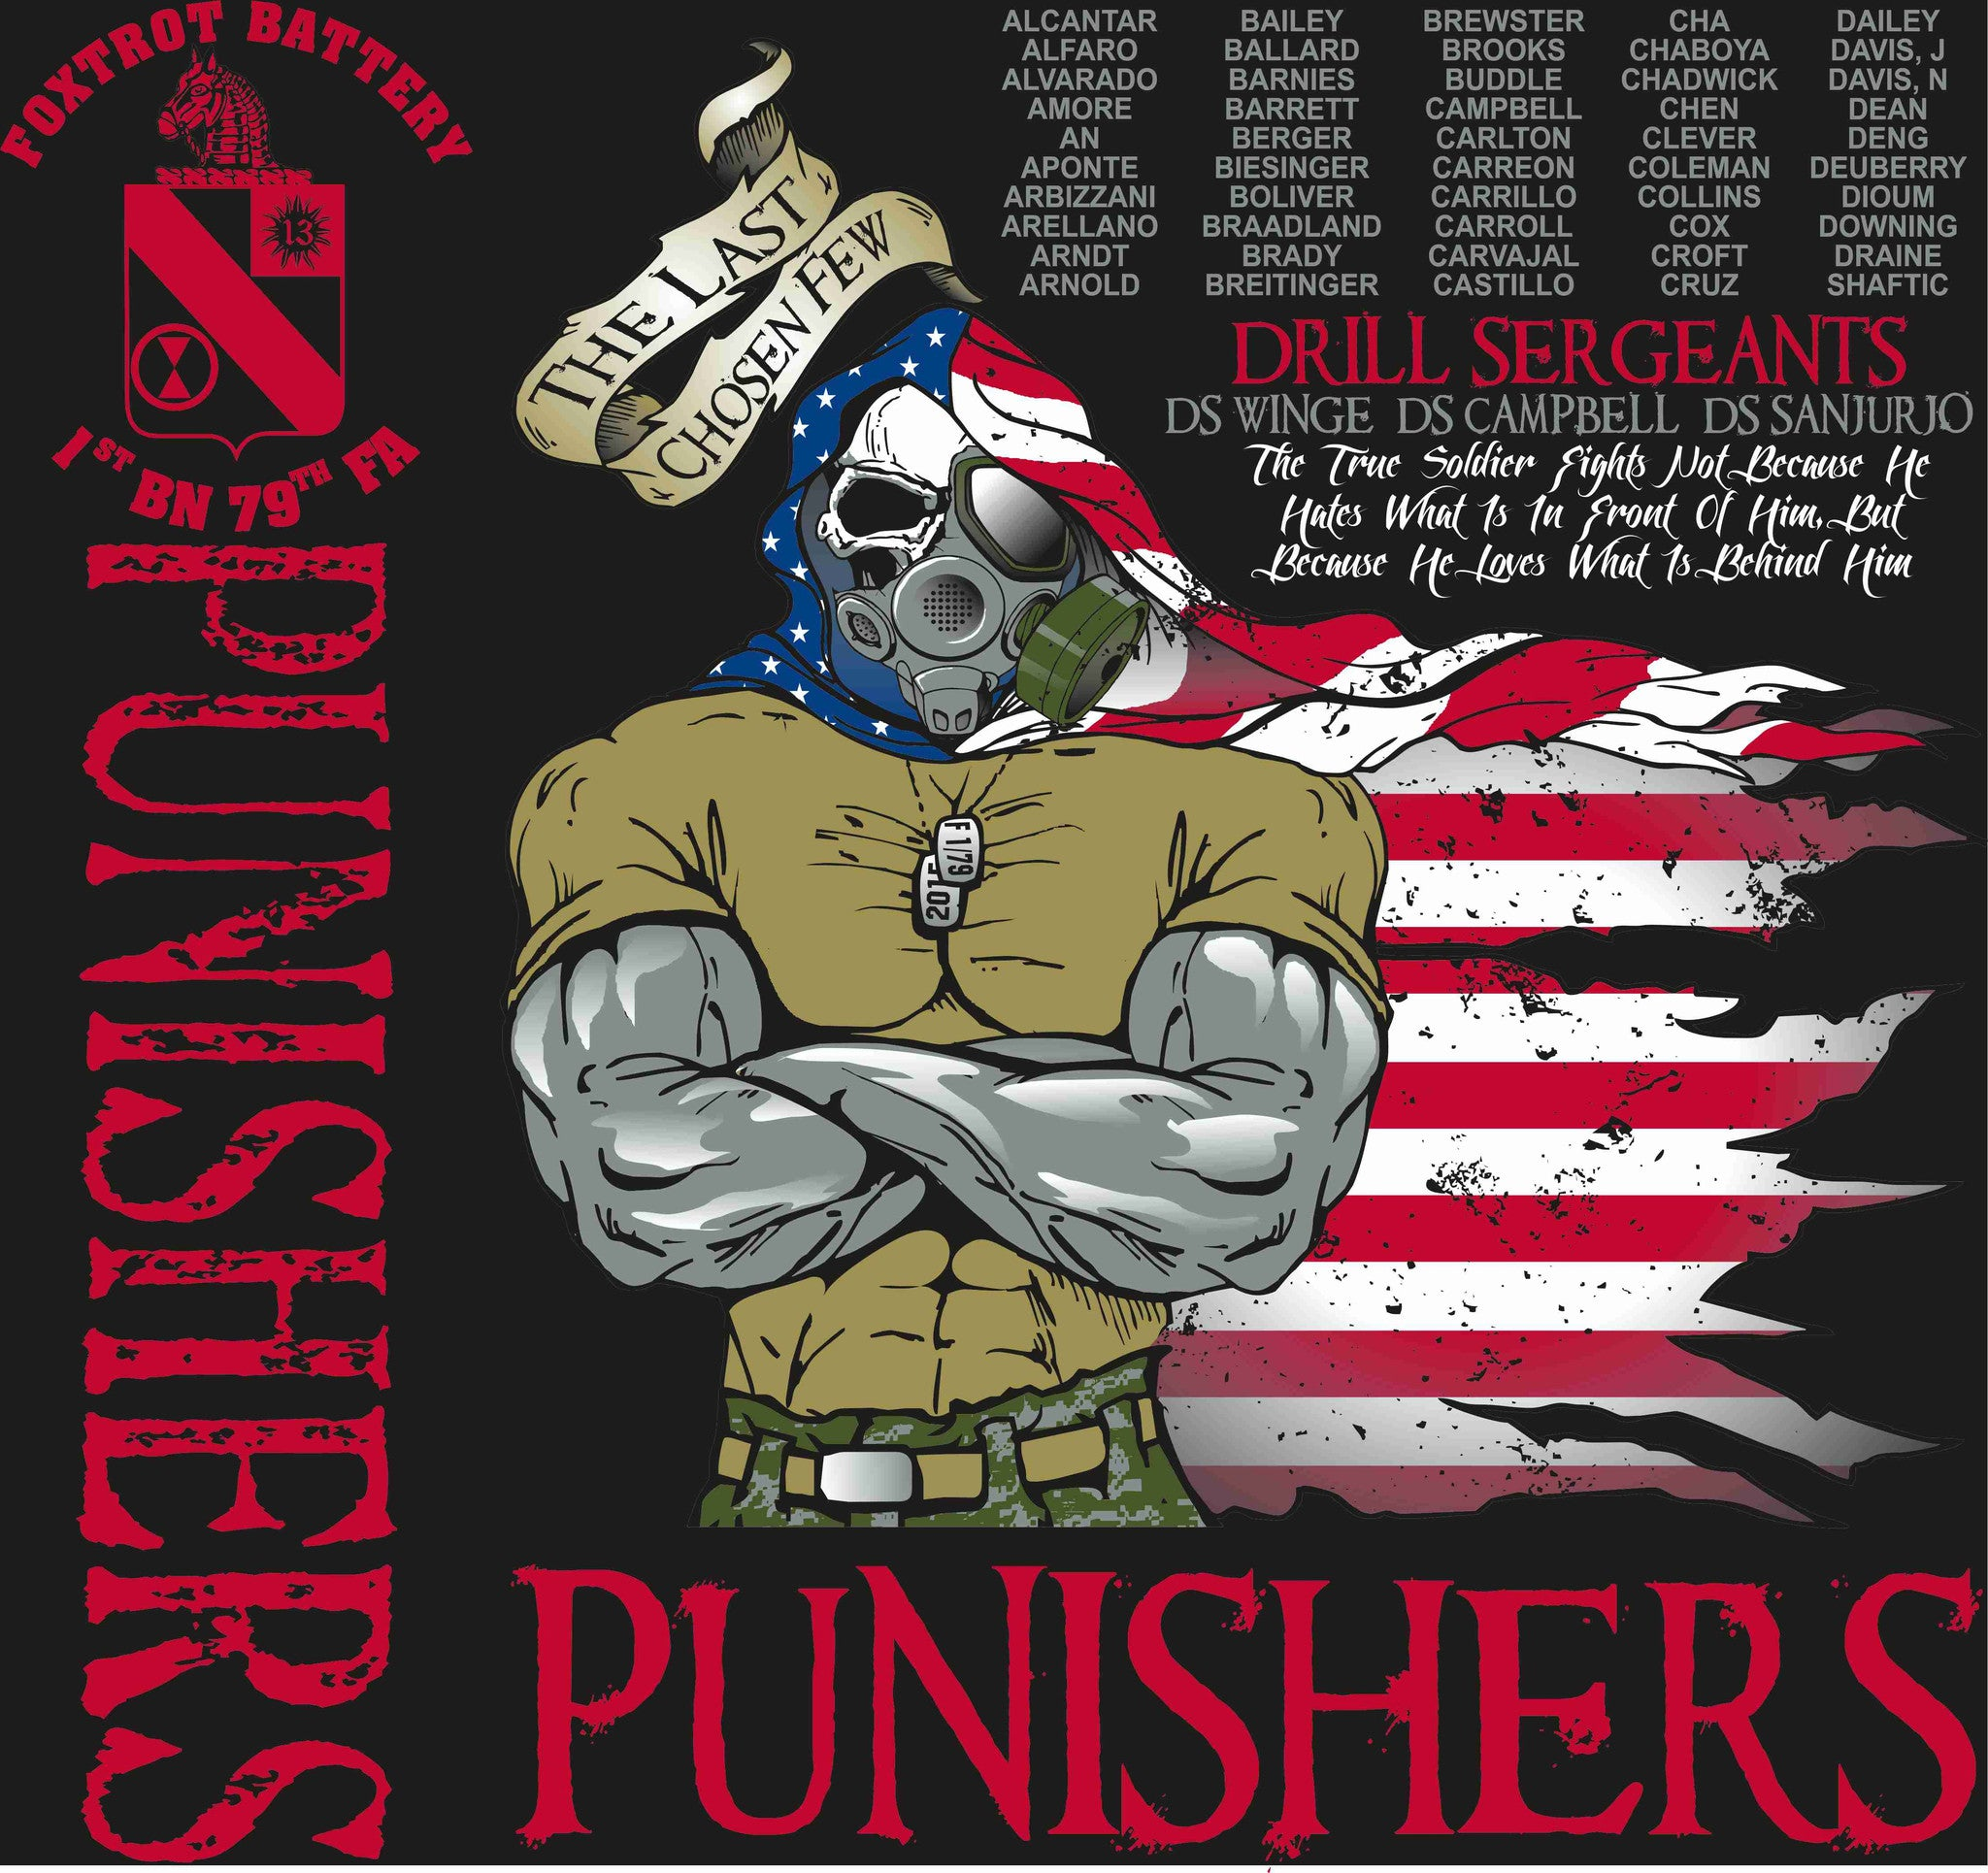 PLATOON SHIRTS (digital) FOX 1st 79th PUNISHERS DEC 2015